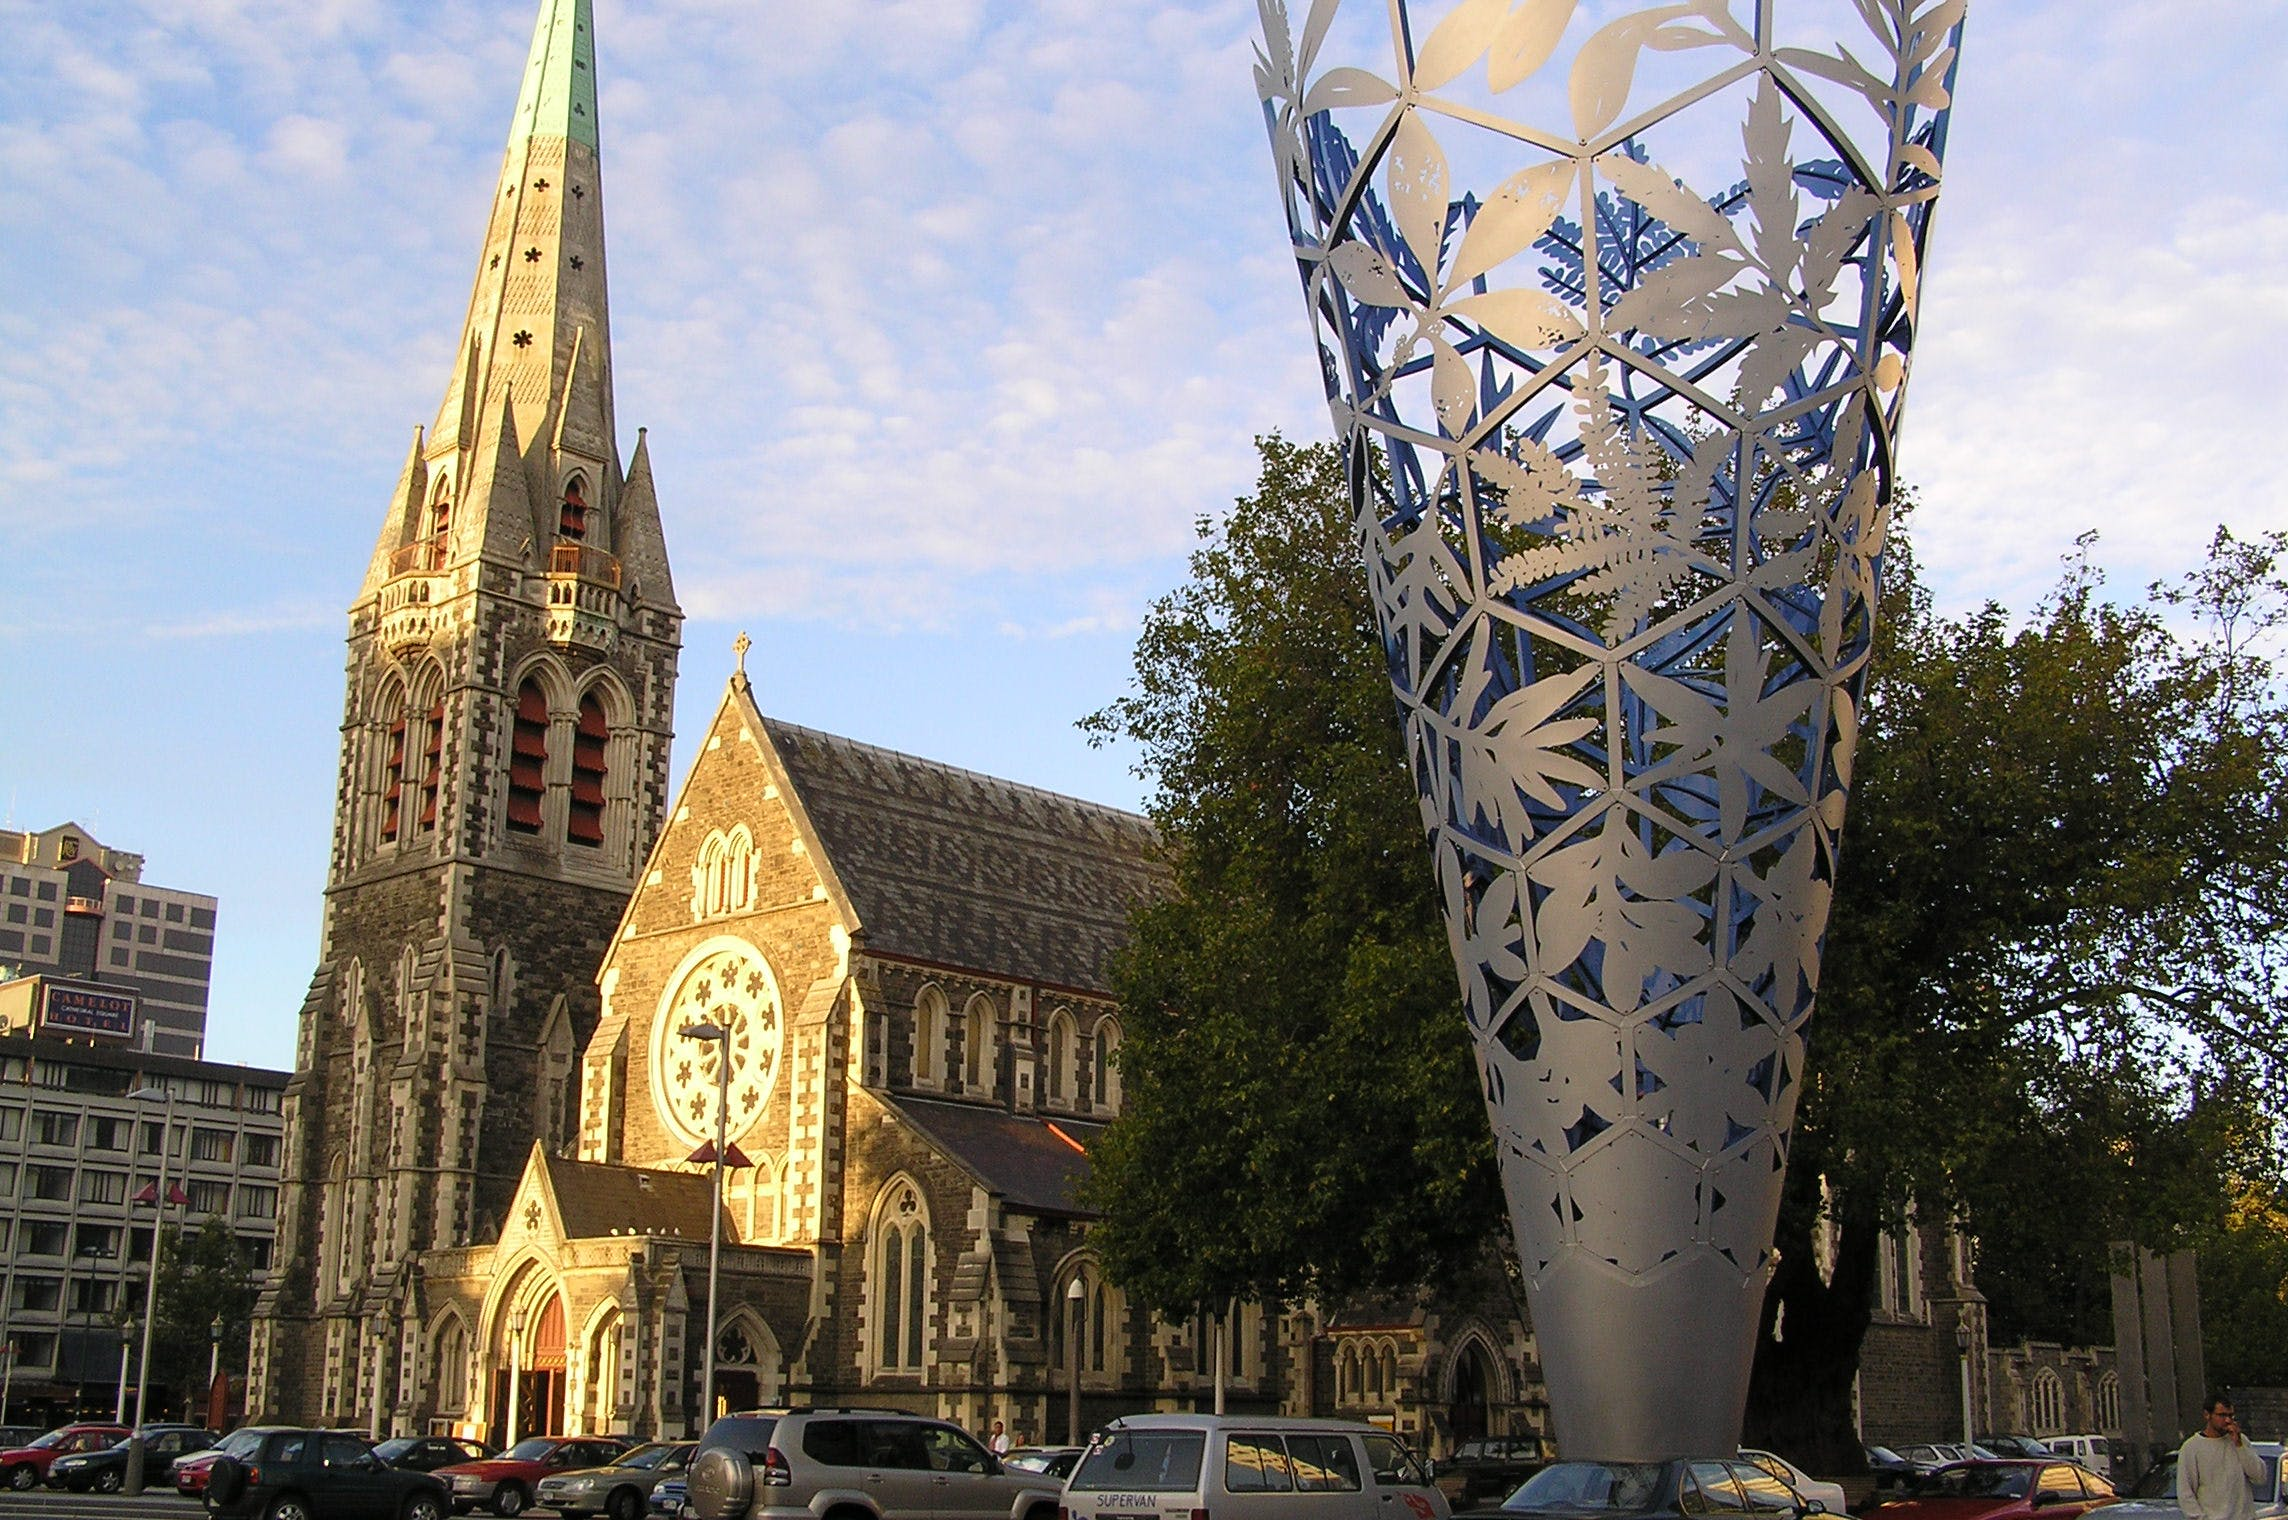 christchurch before the earthquake